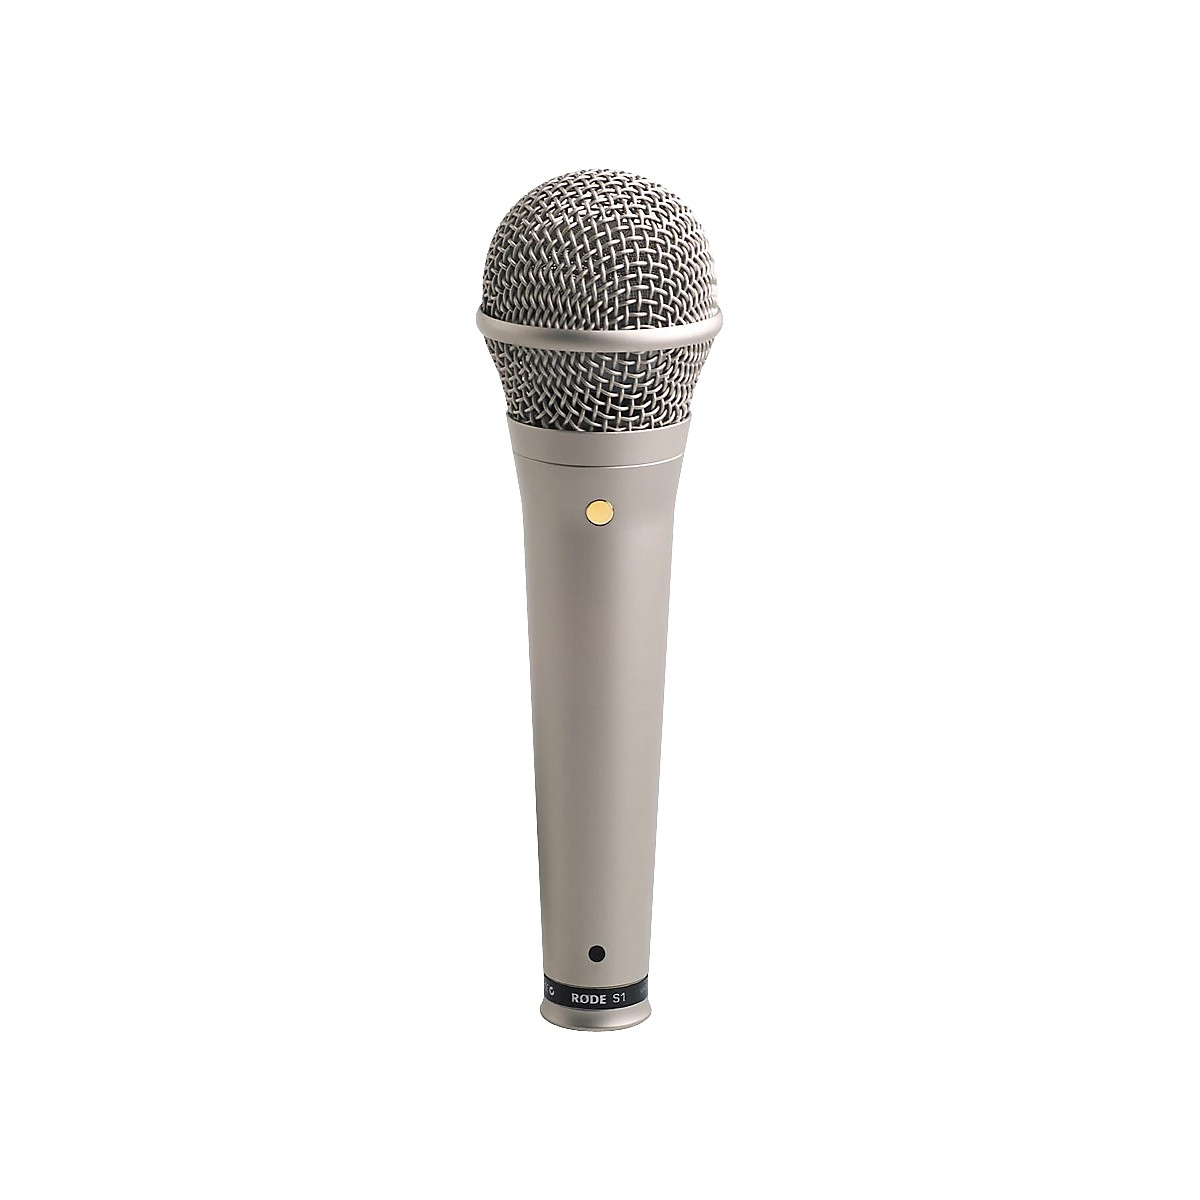 Rode S1 Pro Vocal Condenser Microphone